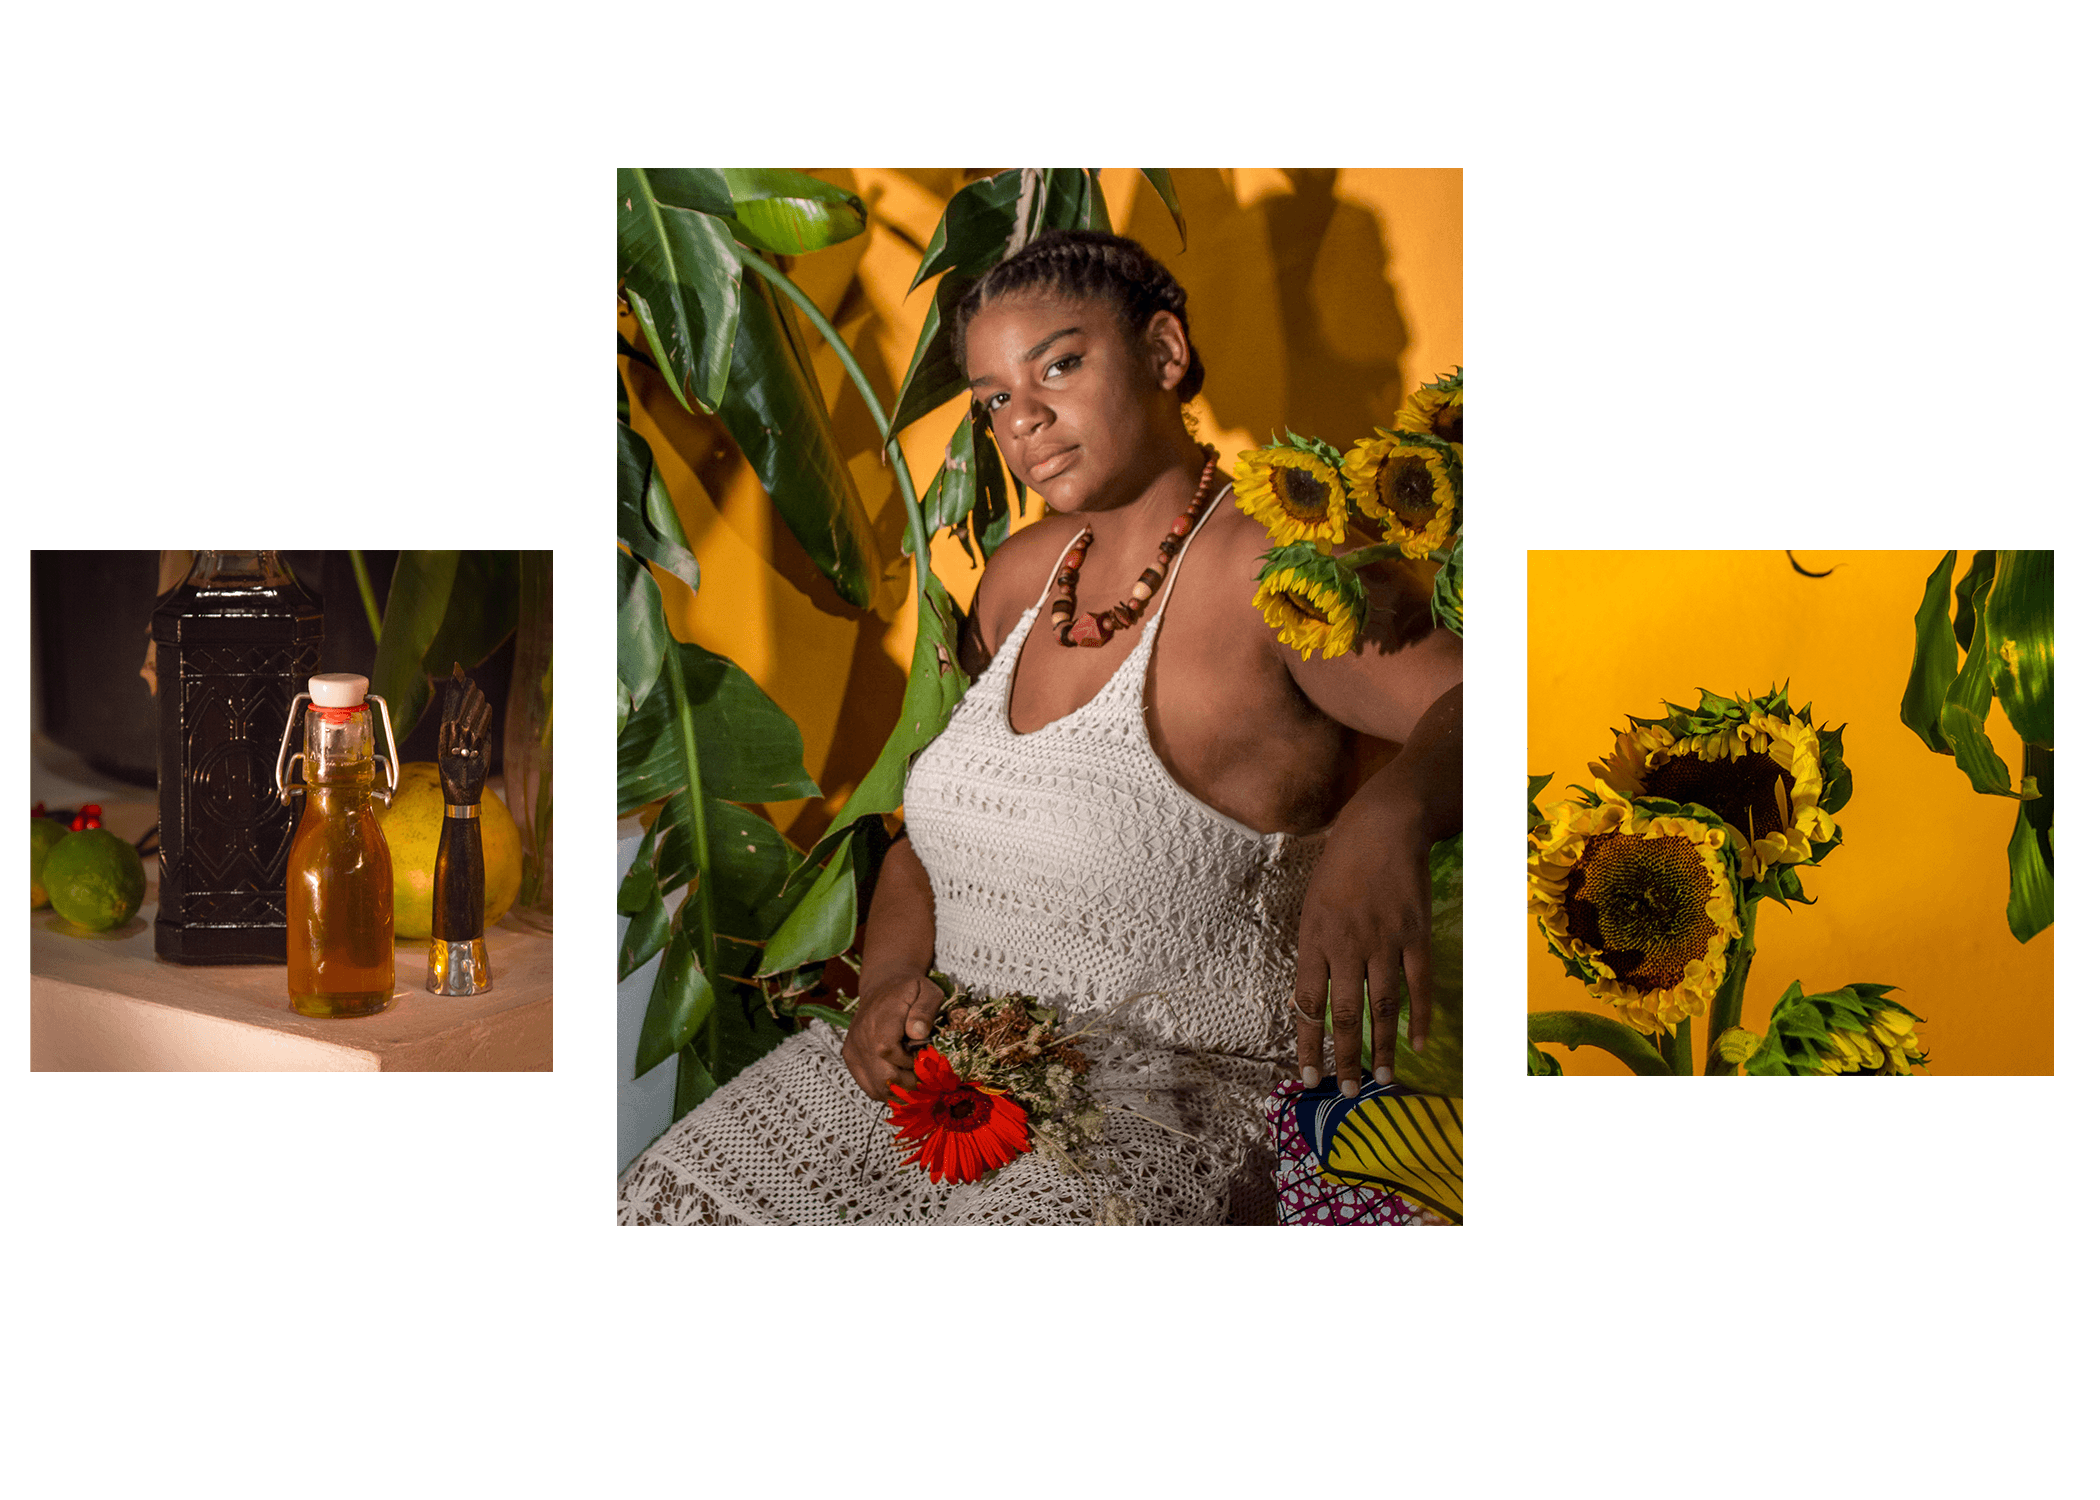 "La Negra de Nadie   (Self Portrait 2017)  Monique Muse Dodd  Assistants: An An Chen, J Triangular, Kyung jin Kim La Negra de Nadie  A photographic alter ego honoring the Yoruba deity Oshun. The title which roughly translates to ""the black woman who belongs to no one"", is inspired by Enrique Grau's painting La Mulata de Cartagenera. The artist subverts the male gaze by offering an image that is both sensual but challenging to the viewer. The feminine is not only to be desired but to be honored.  The smaller photos flanking the portrait are all offerings to Oshun, the Goddess of Sensuality, Fertility and Fresh Water. This work serves as an offering to Oshun as well as a reminder of the divine feminine energy that we all carry with in us."